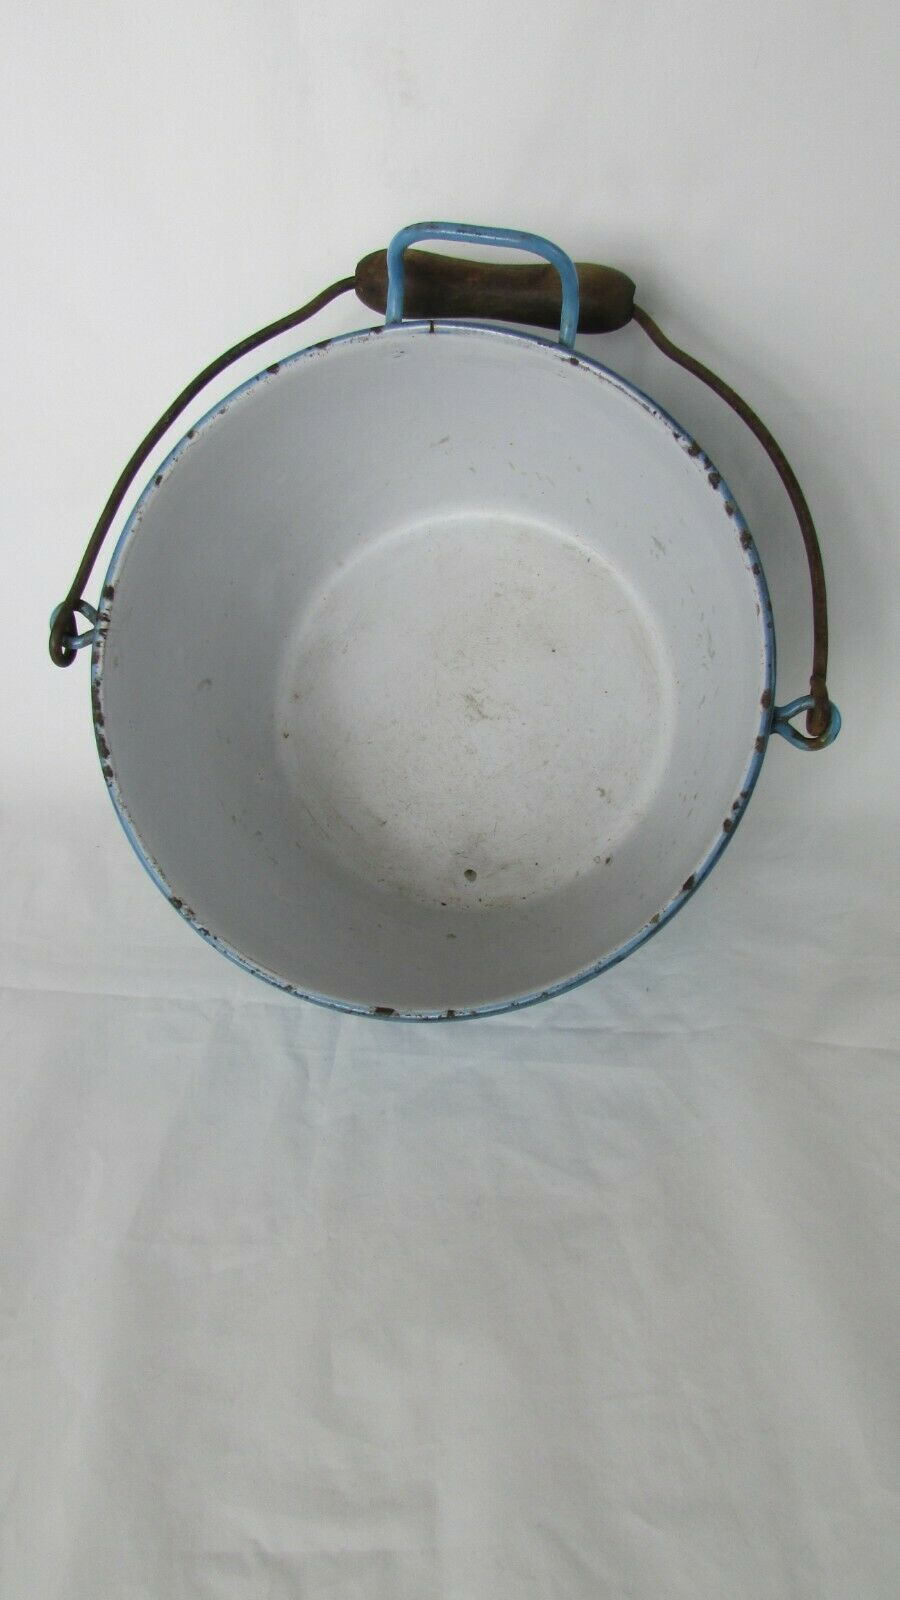 Vintage Enamel  Pail Bucket Blue and White Enamelware With Wooden Handle image 6